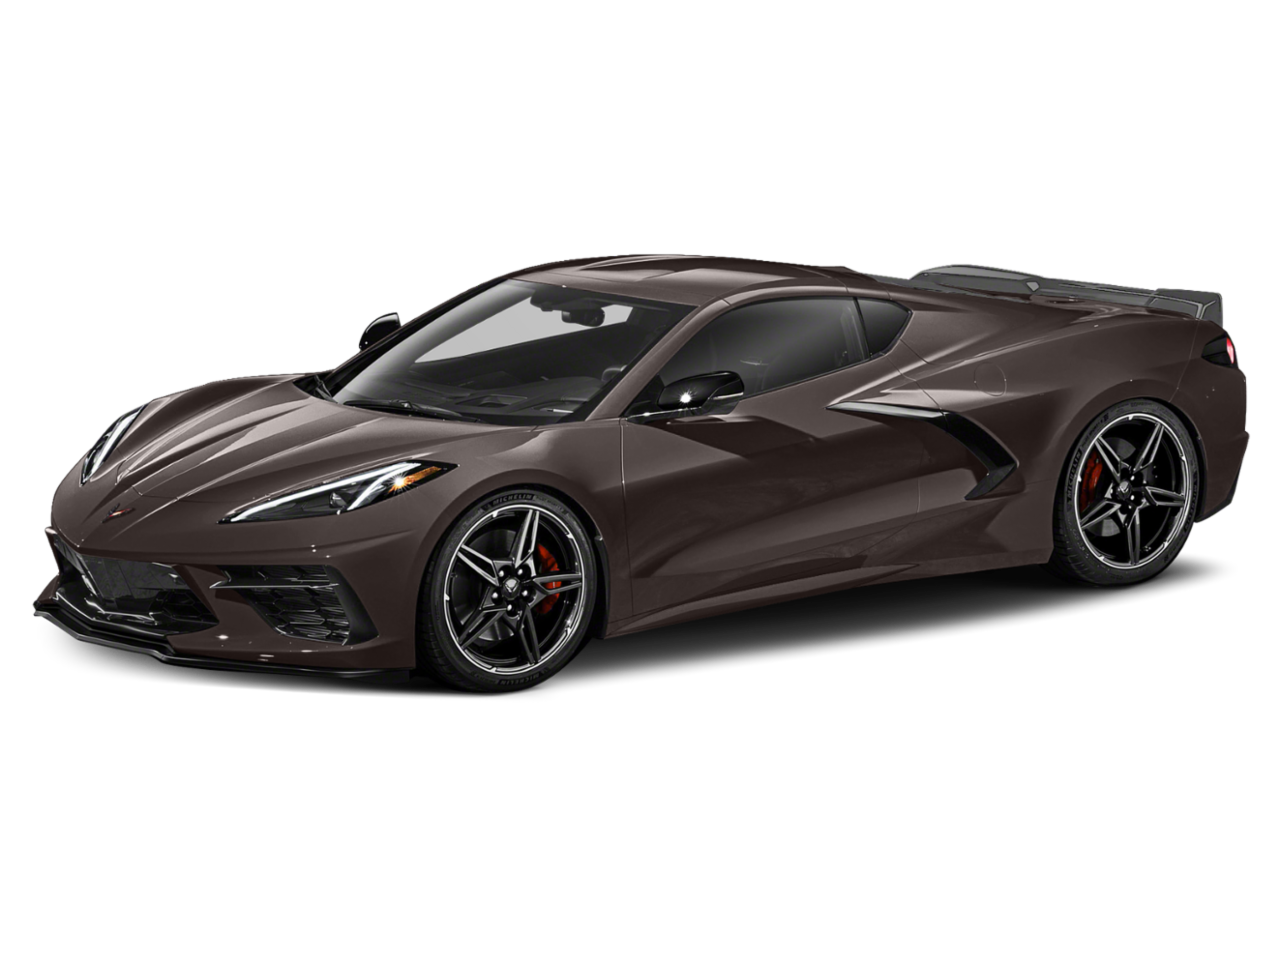 Chevrolet 2021 Corvette 2LT